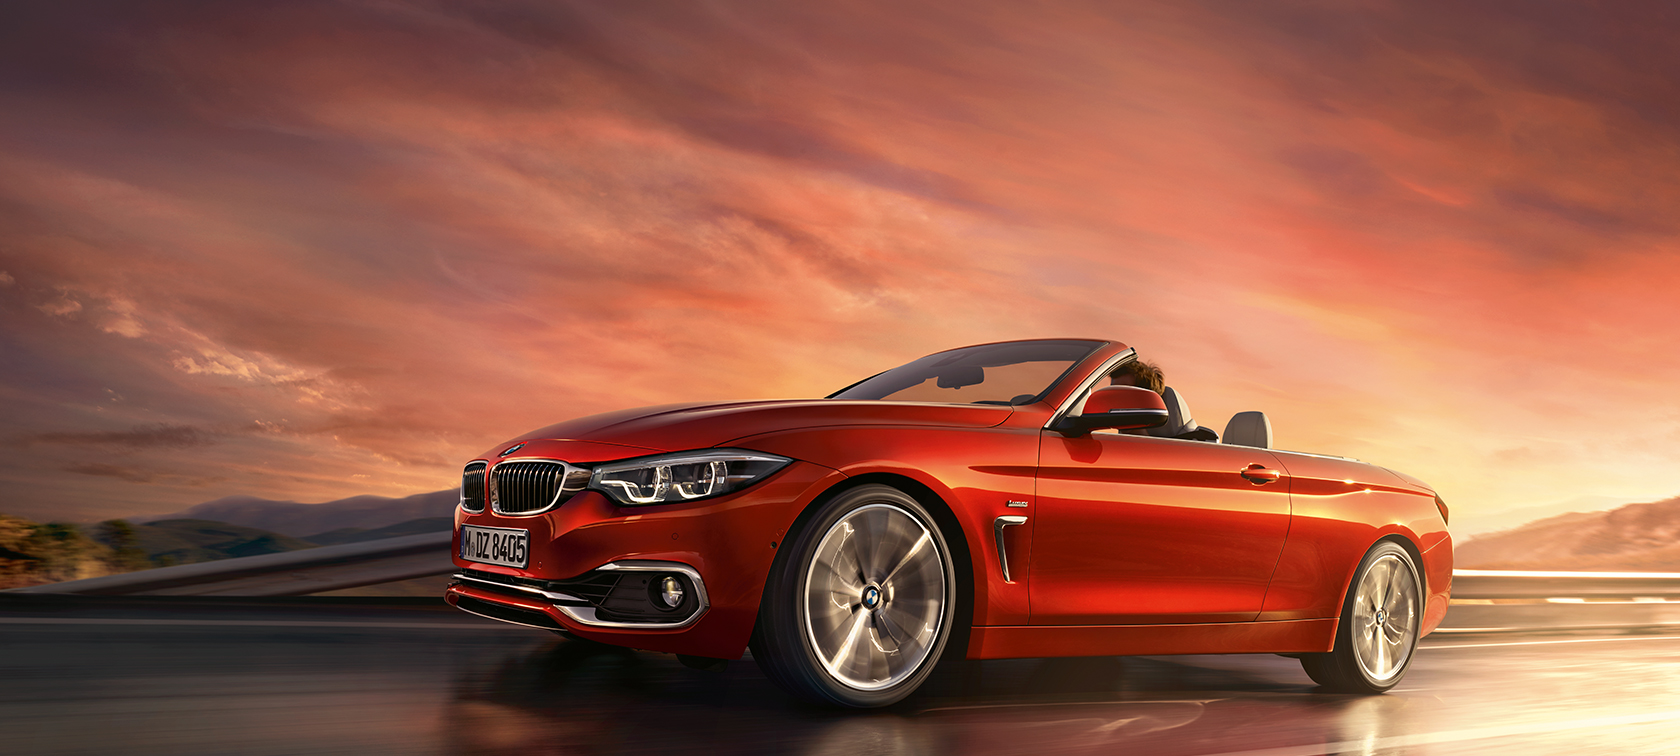 BMW 4 Series Convertible driving shot